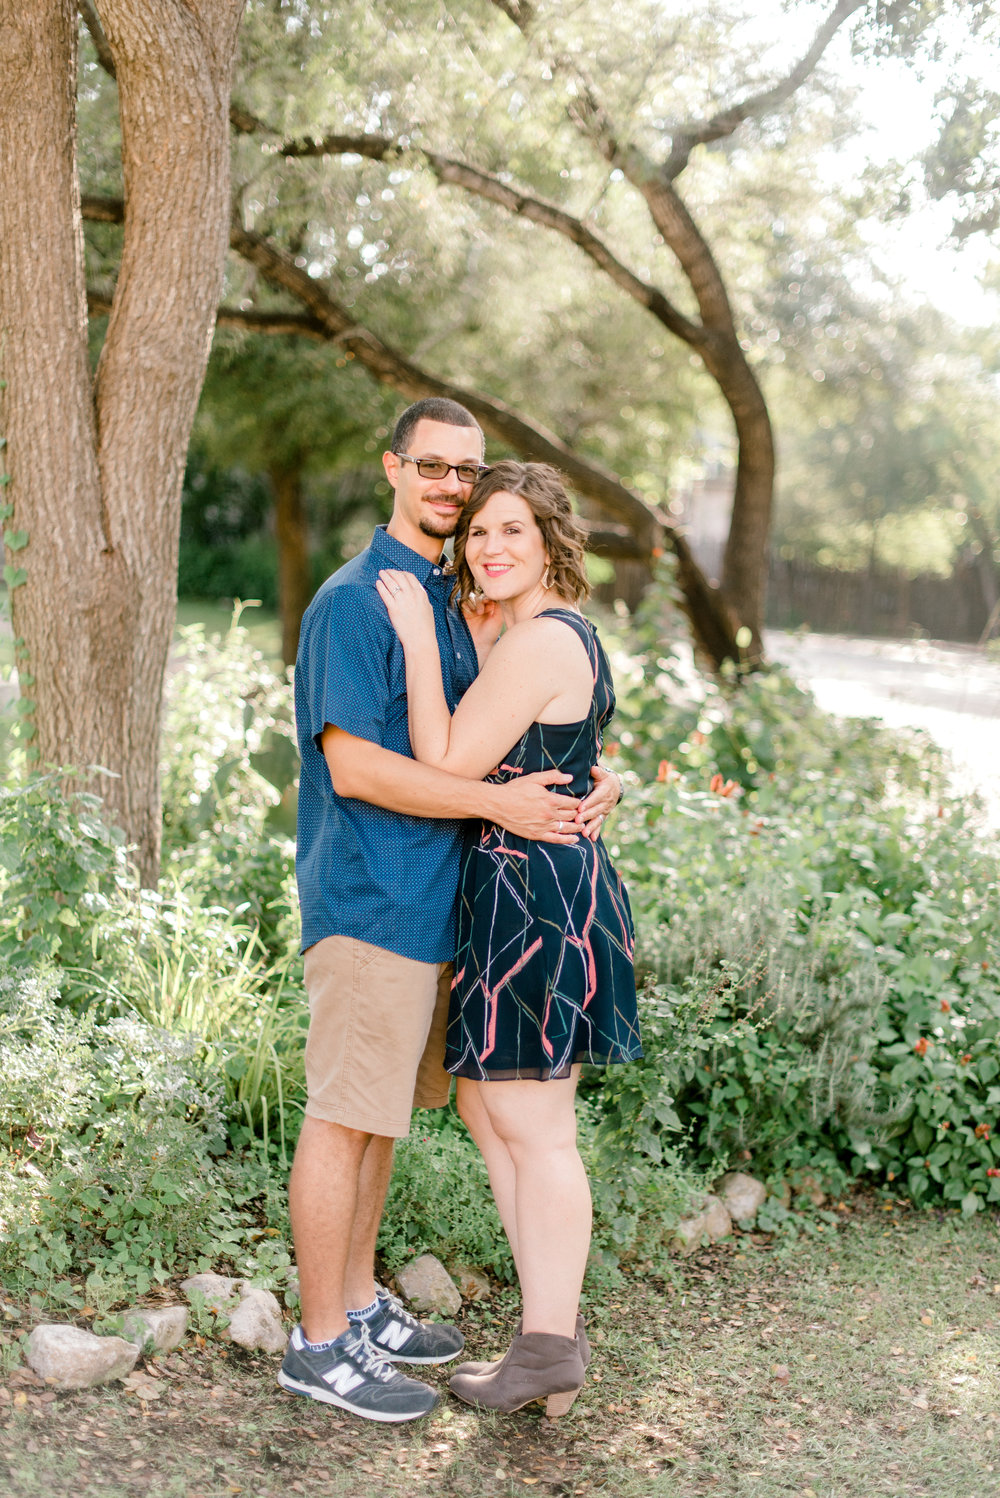 New Braunfels Photographer | Family Photography | Photography Session in Gruene New Braunfels